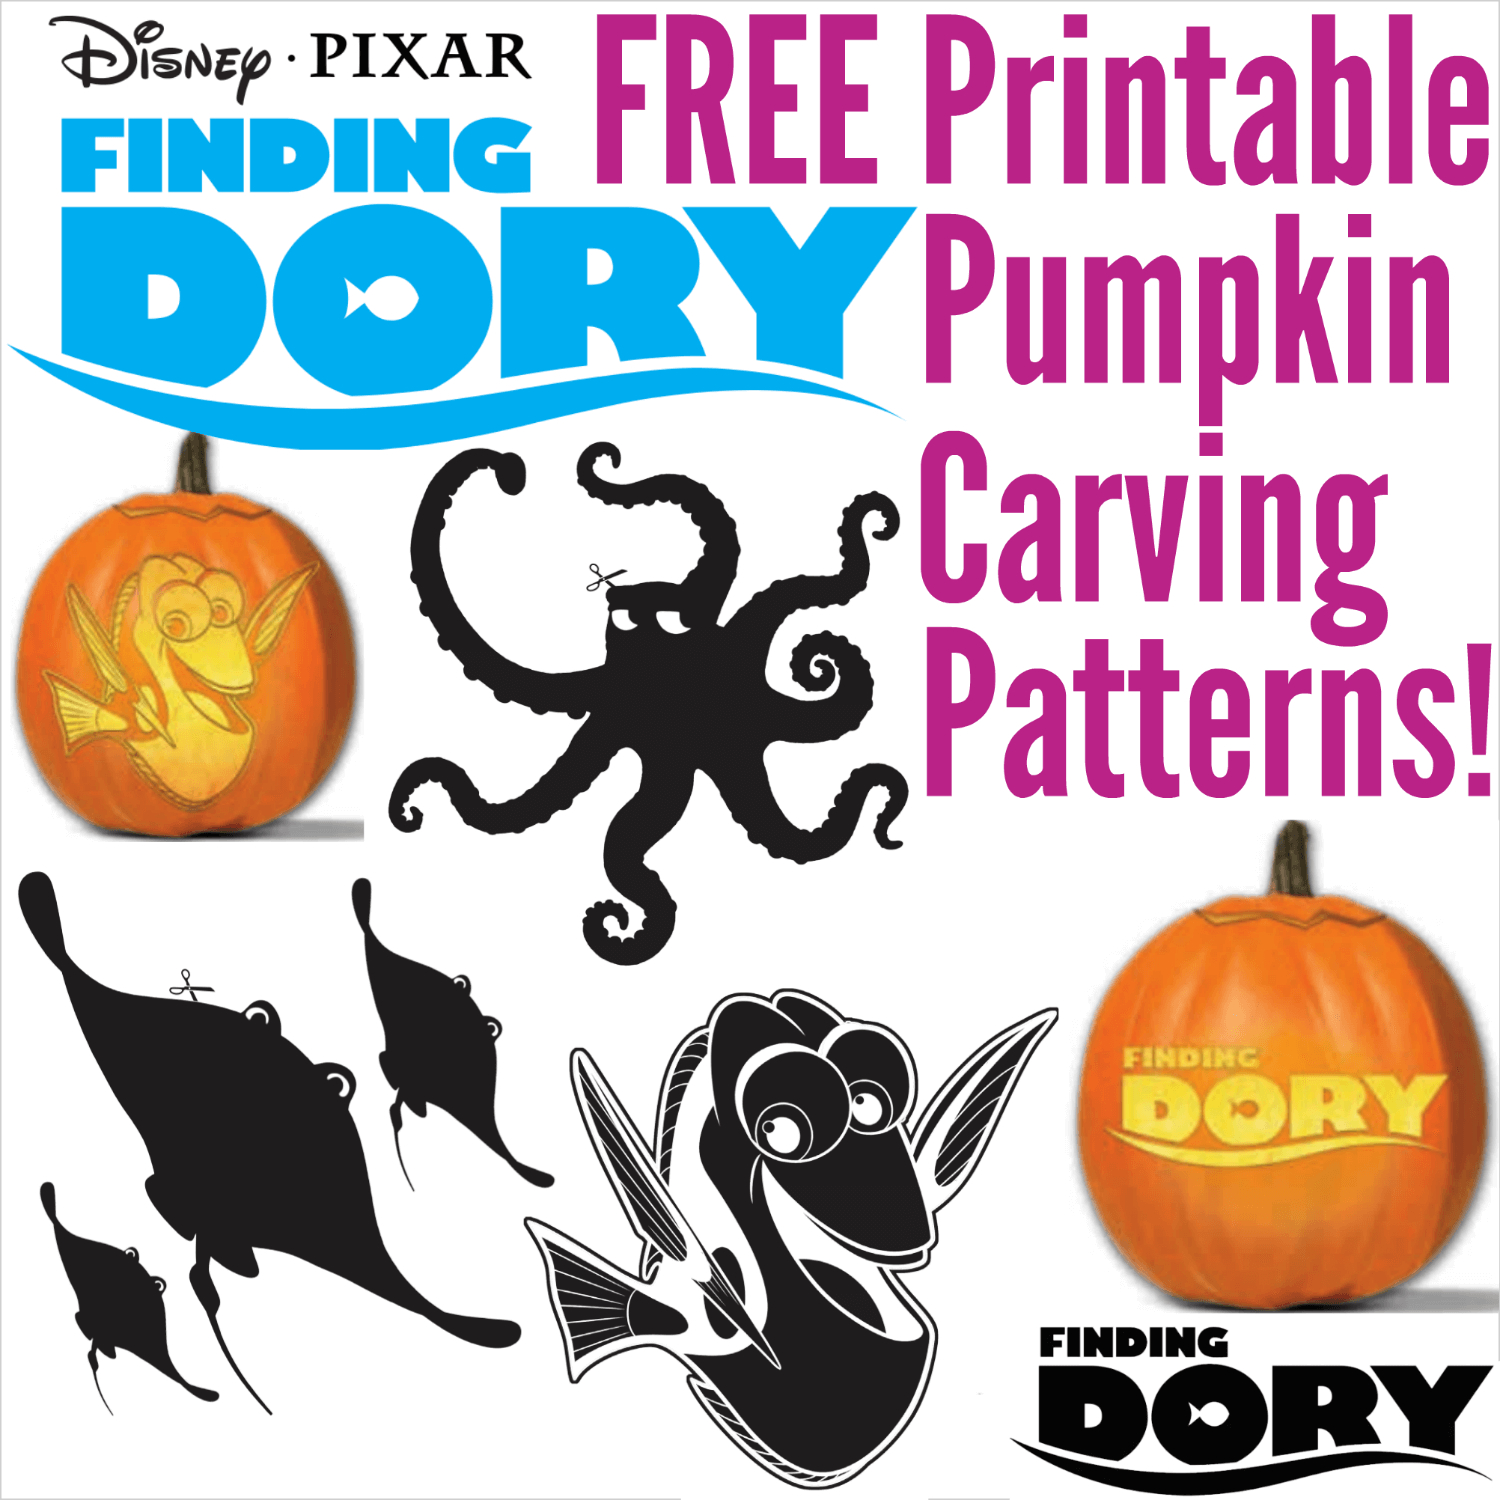 Free Finding Dory Pumpkin Carving Patterns To Print! - Halloween Pumpkin Carving Stencils Free Printable